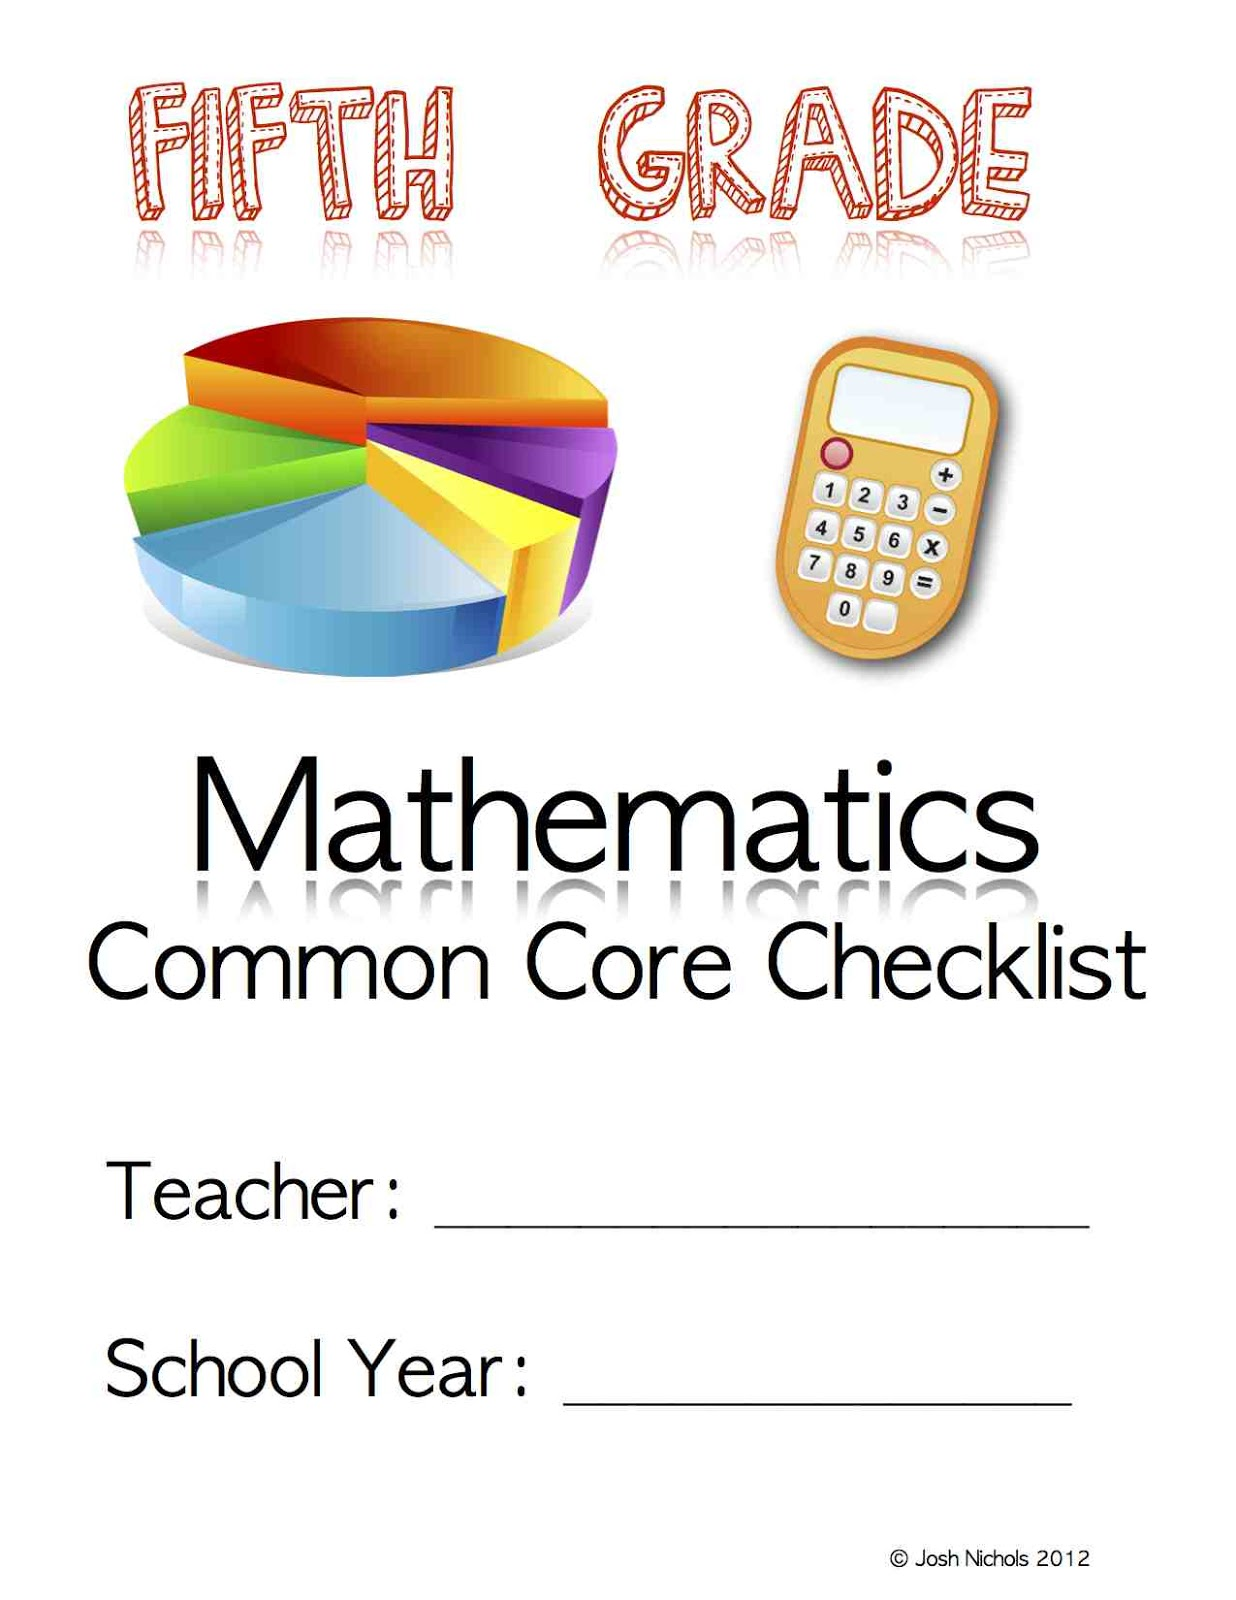 Math Resource Webpage And New Ccss Checklist Document Blog Of Mrmathcoach